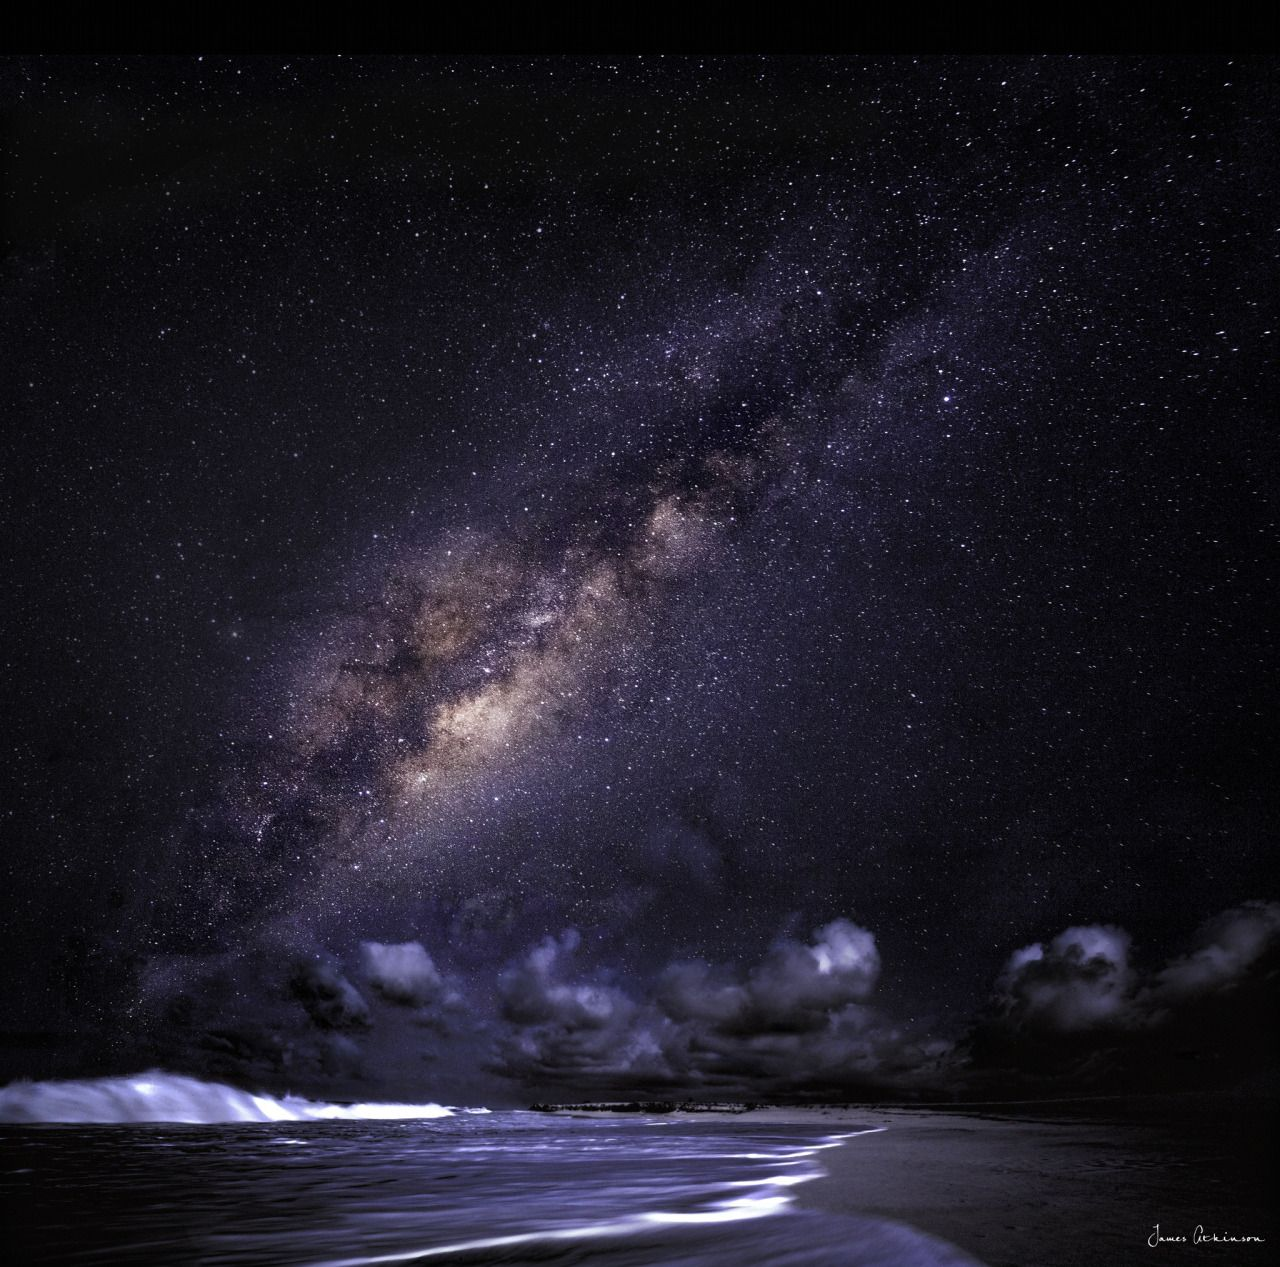 The beautiful Milky Way taken in one of the most darkest skies in the world over Boa Vista in the Cape Verde Islands. photo by James Atkinson